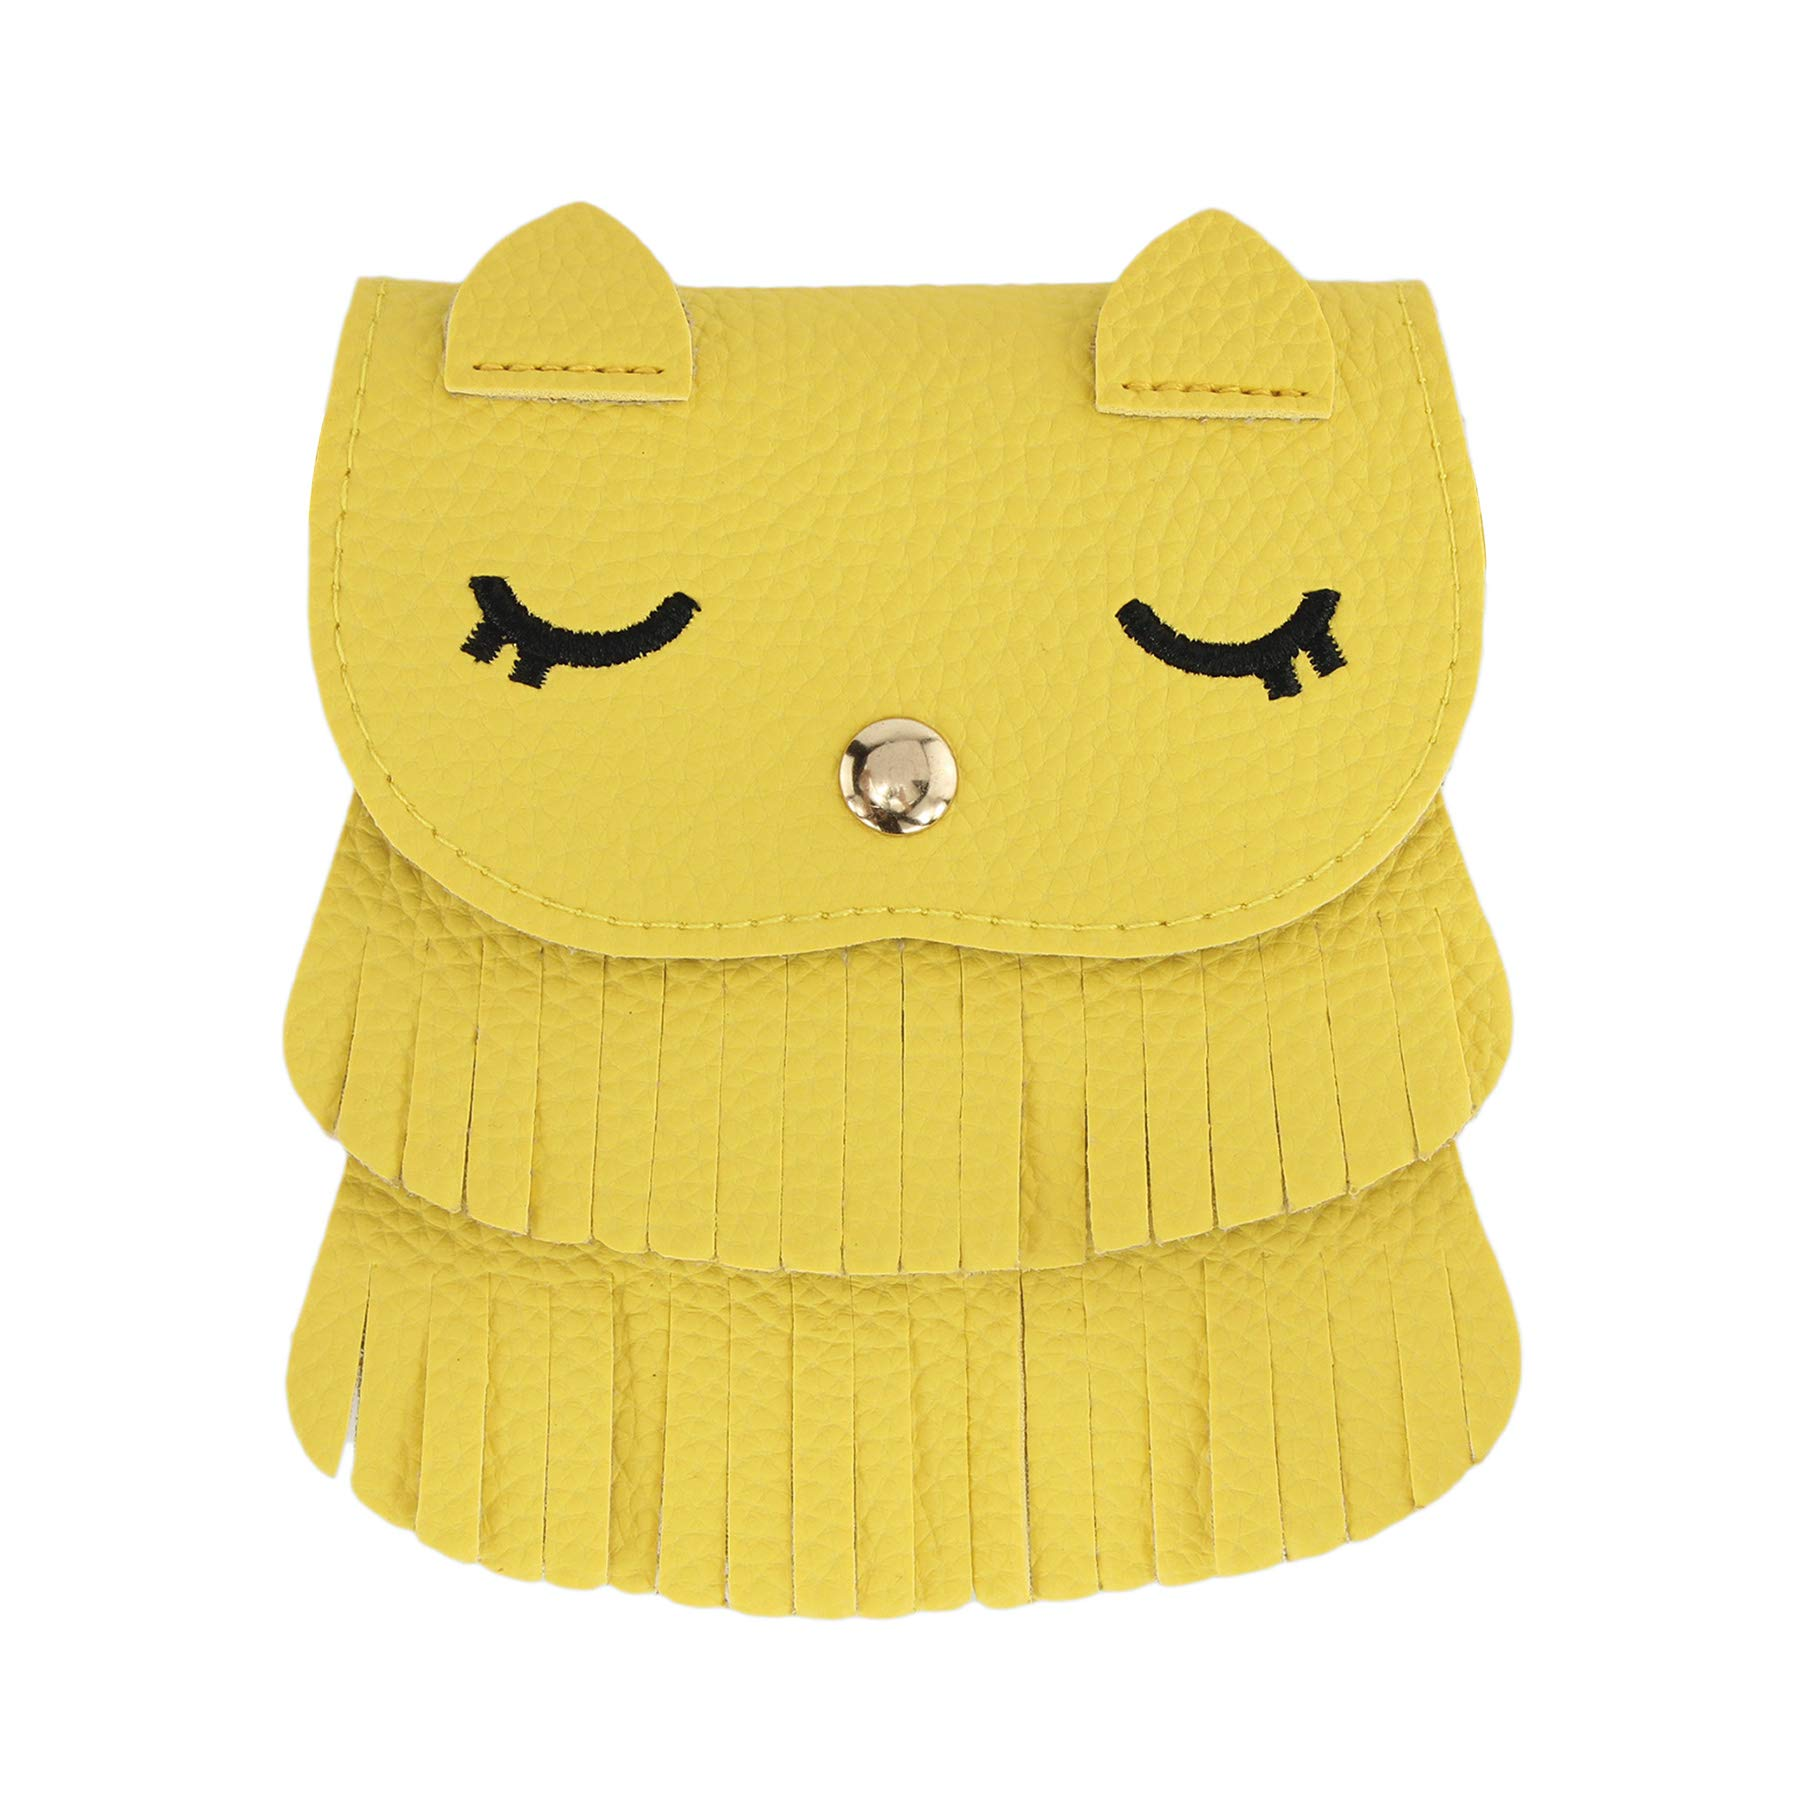 SteamedBun Girls Bags and Purses for Kids Crossbody Mini Halloween Owl Wallet with Tassel (Yellow_large)